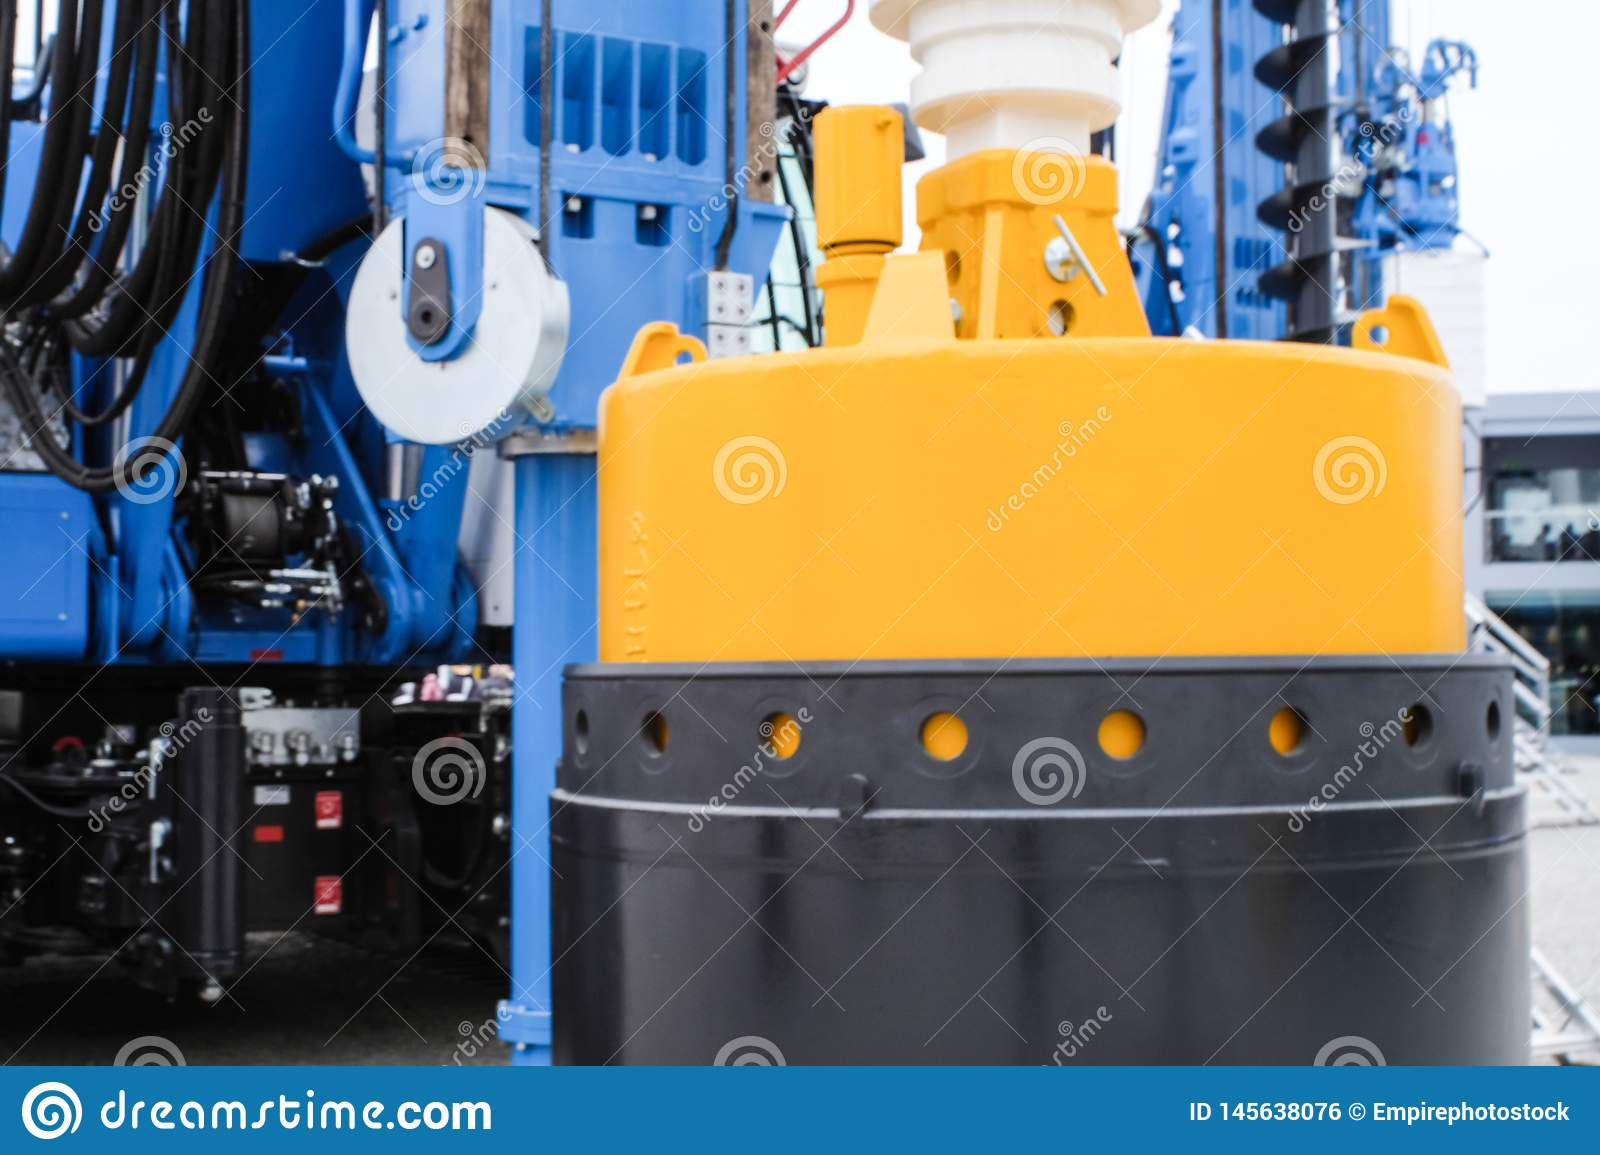 Bucket Drilling Equipment For Construction Industry, Piling